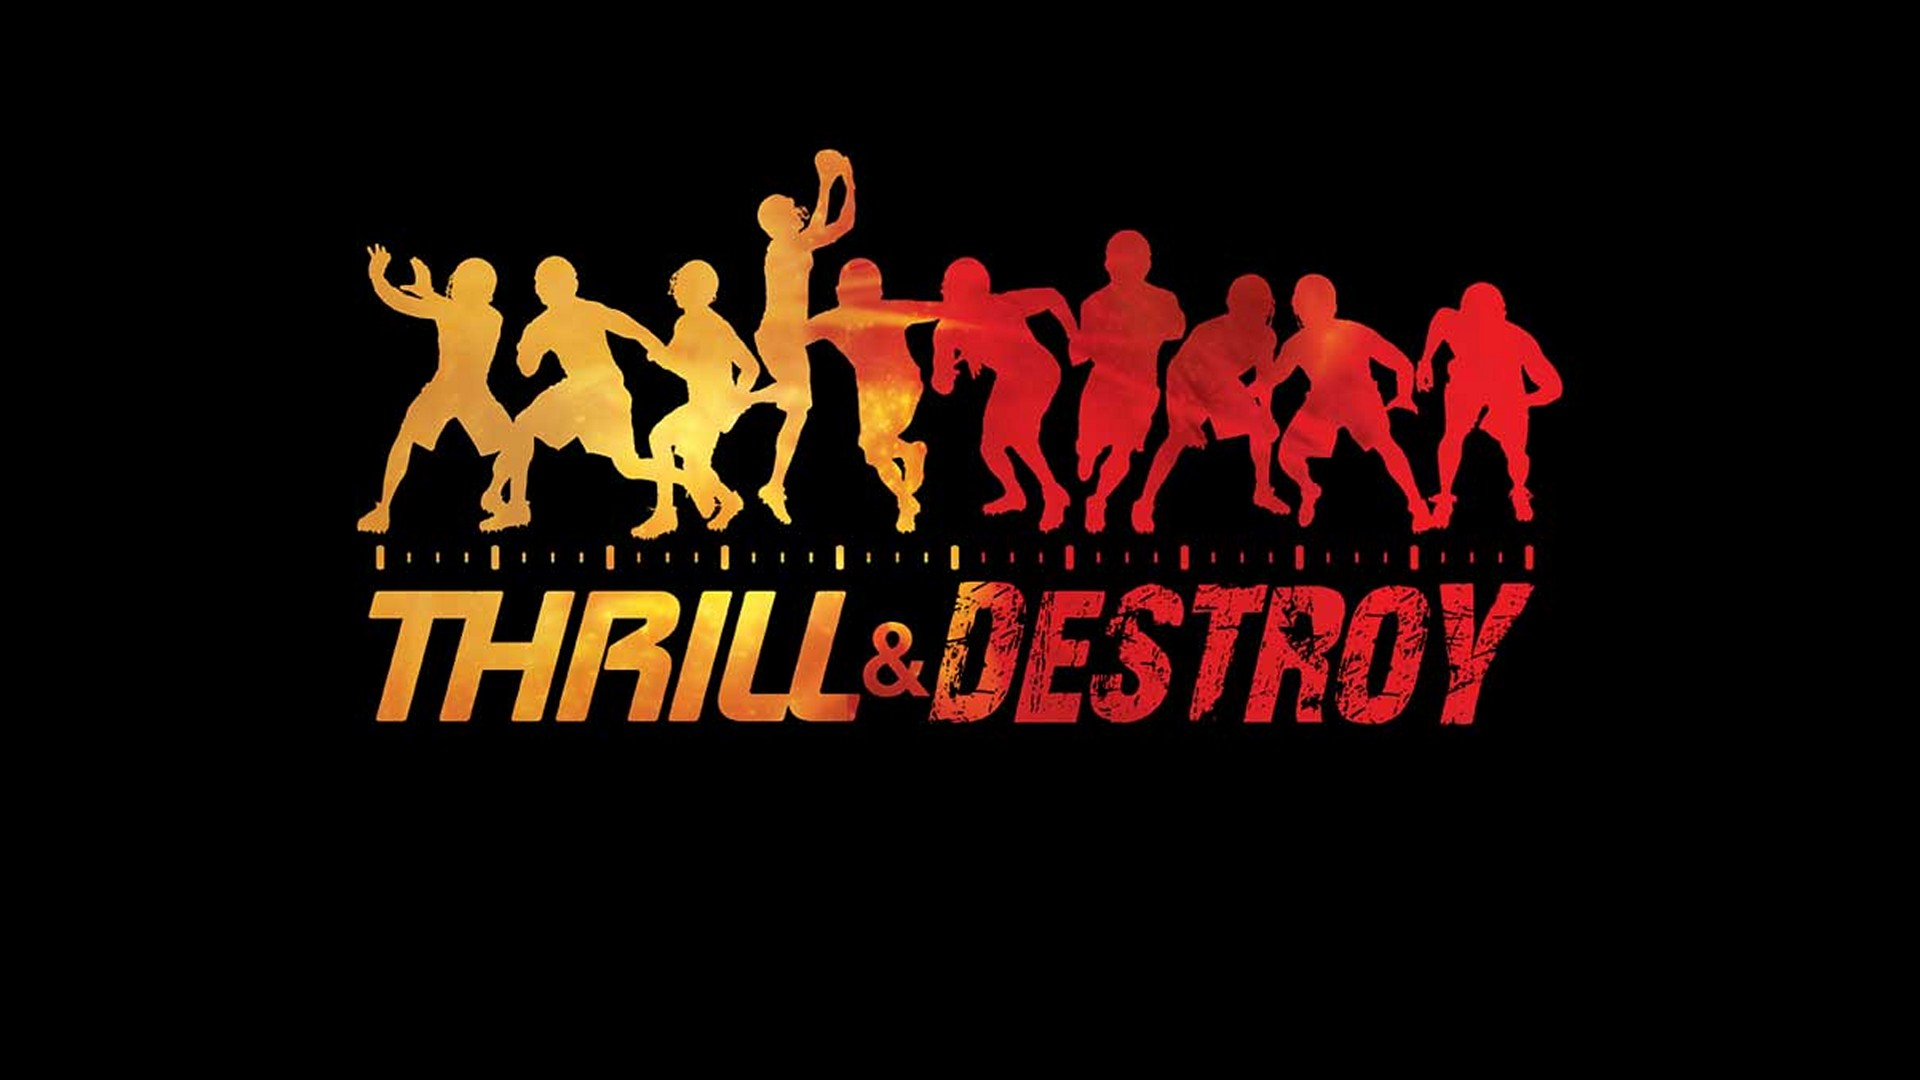 Adidas Thrill And Destroy Logo 1920x1080 HD NFL Motivational and 1920x1080